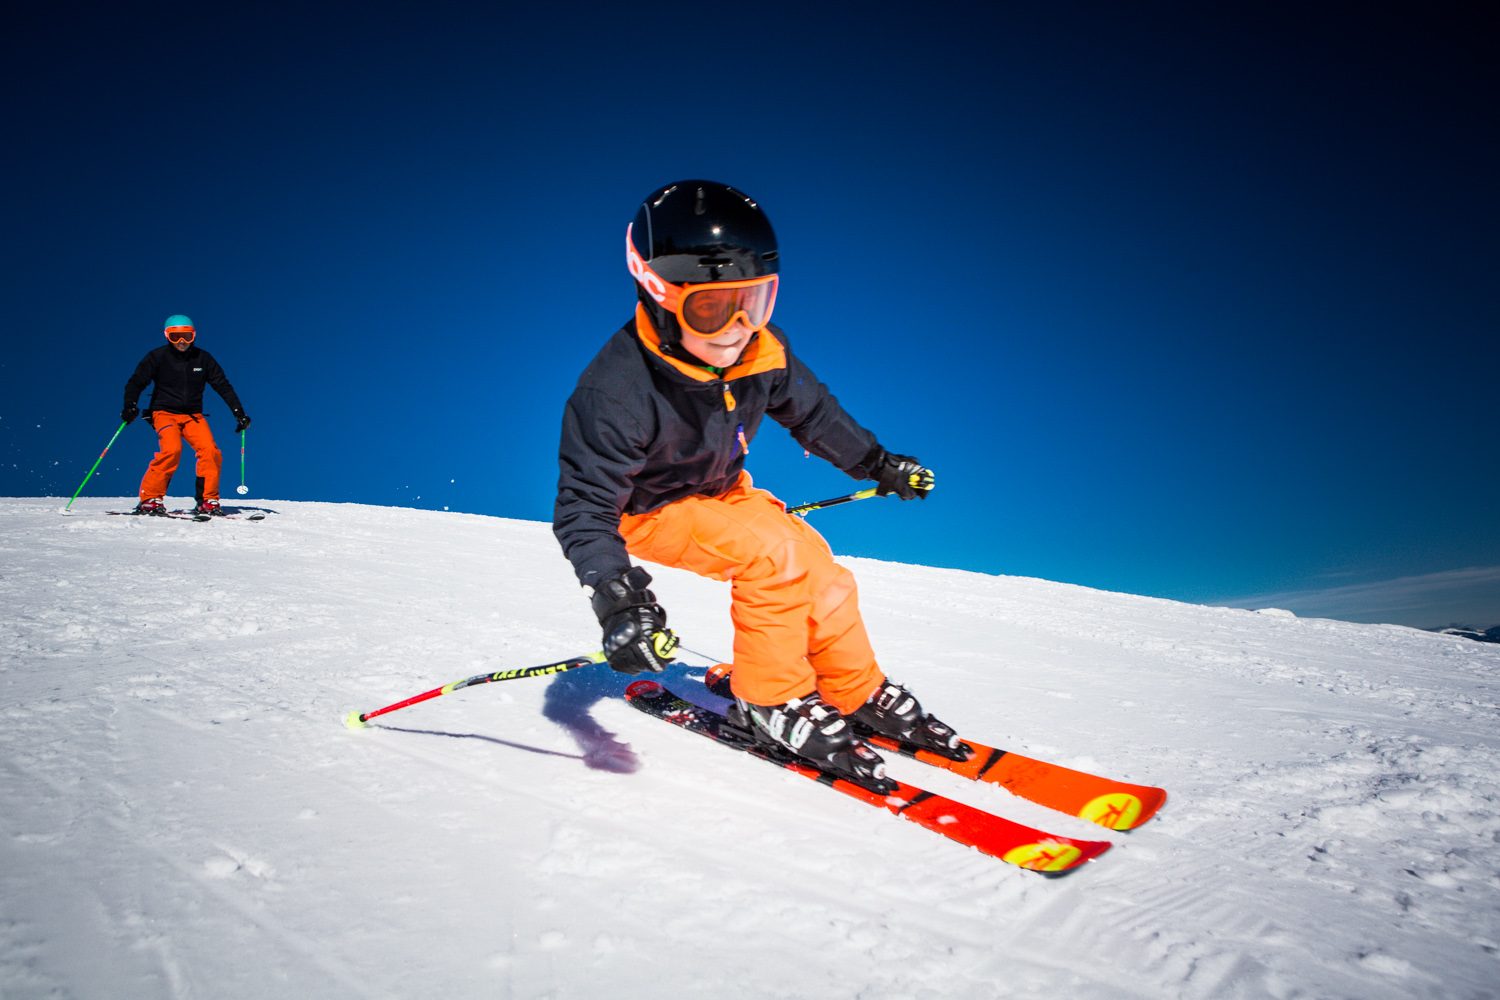 What Are The Equipment That Is Needed For Ski